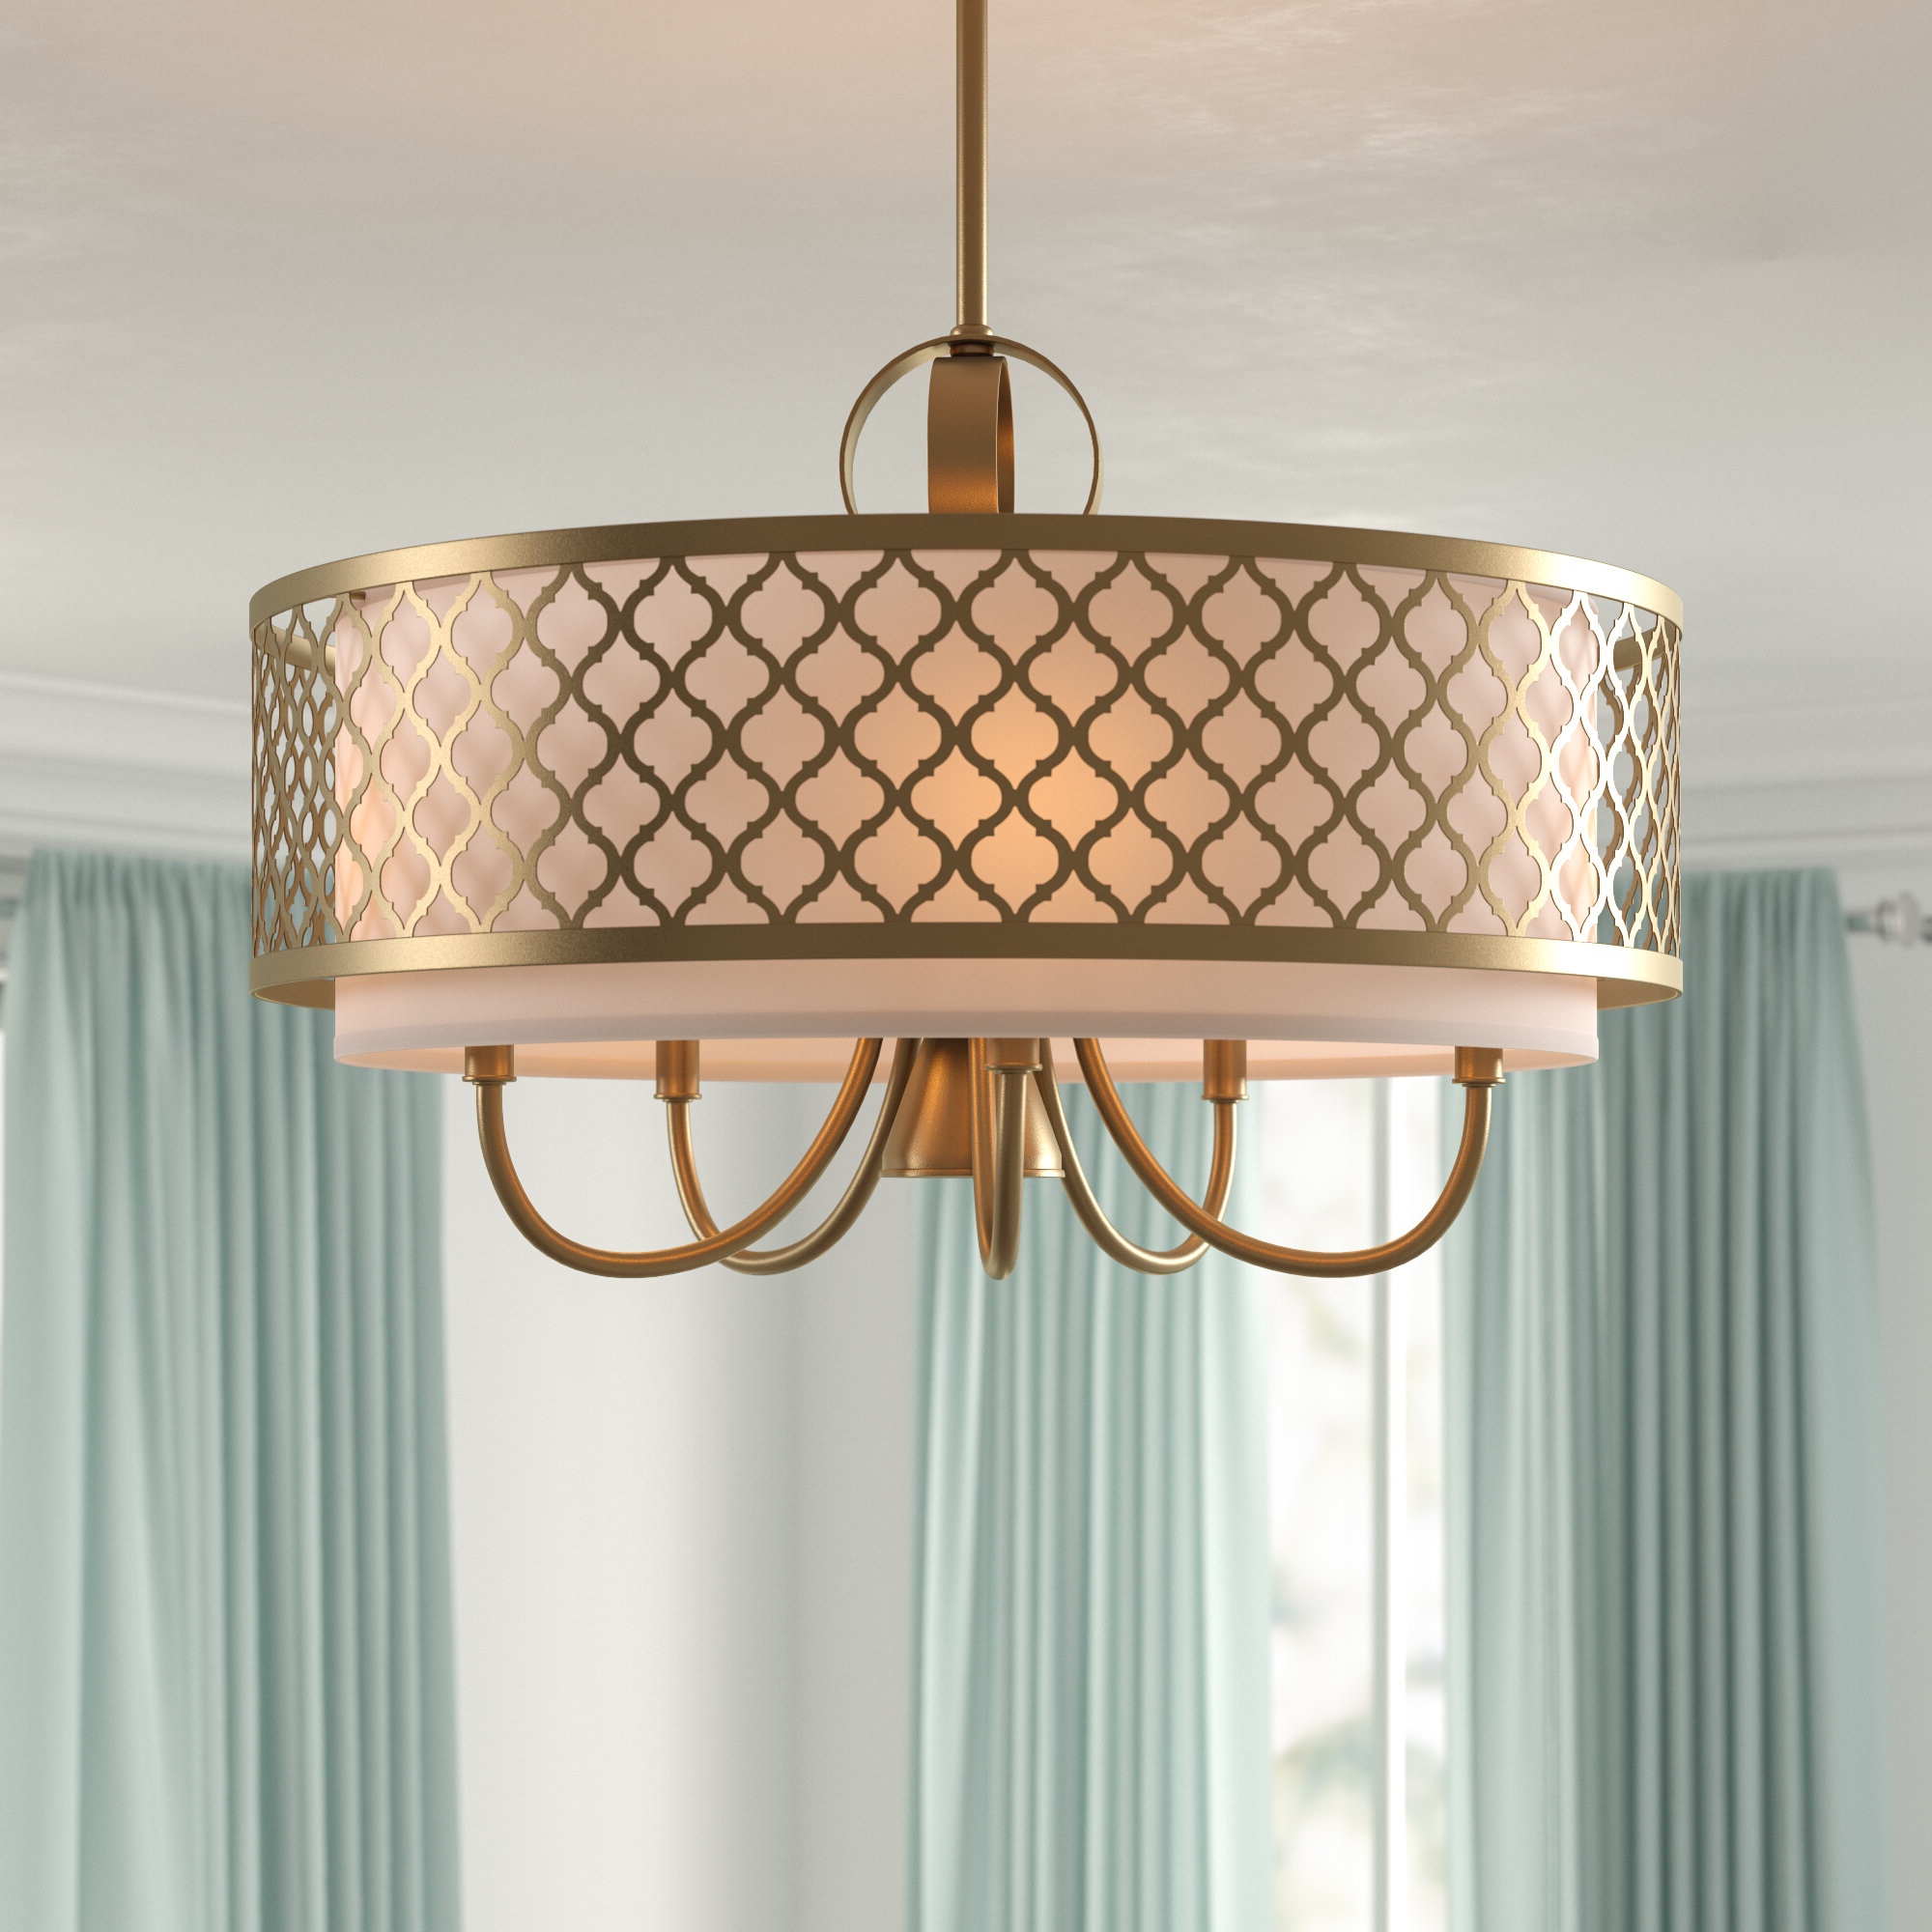 Tymvou 6 Light Drum Chandelier In Well Liked Wadlington 6 Light Single Cylinder Pendants (View 16 of 20)